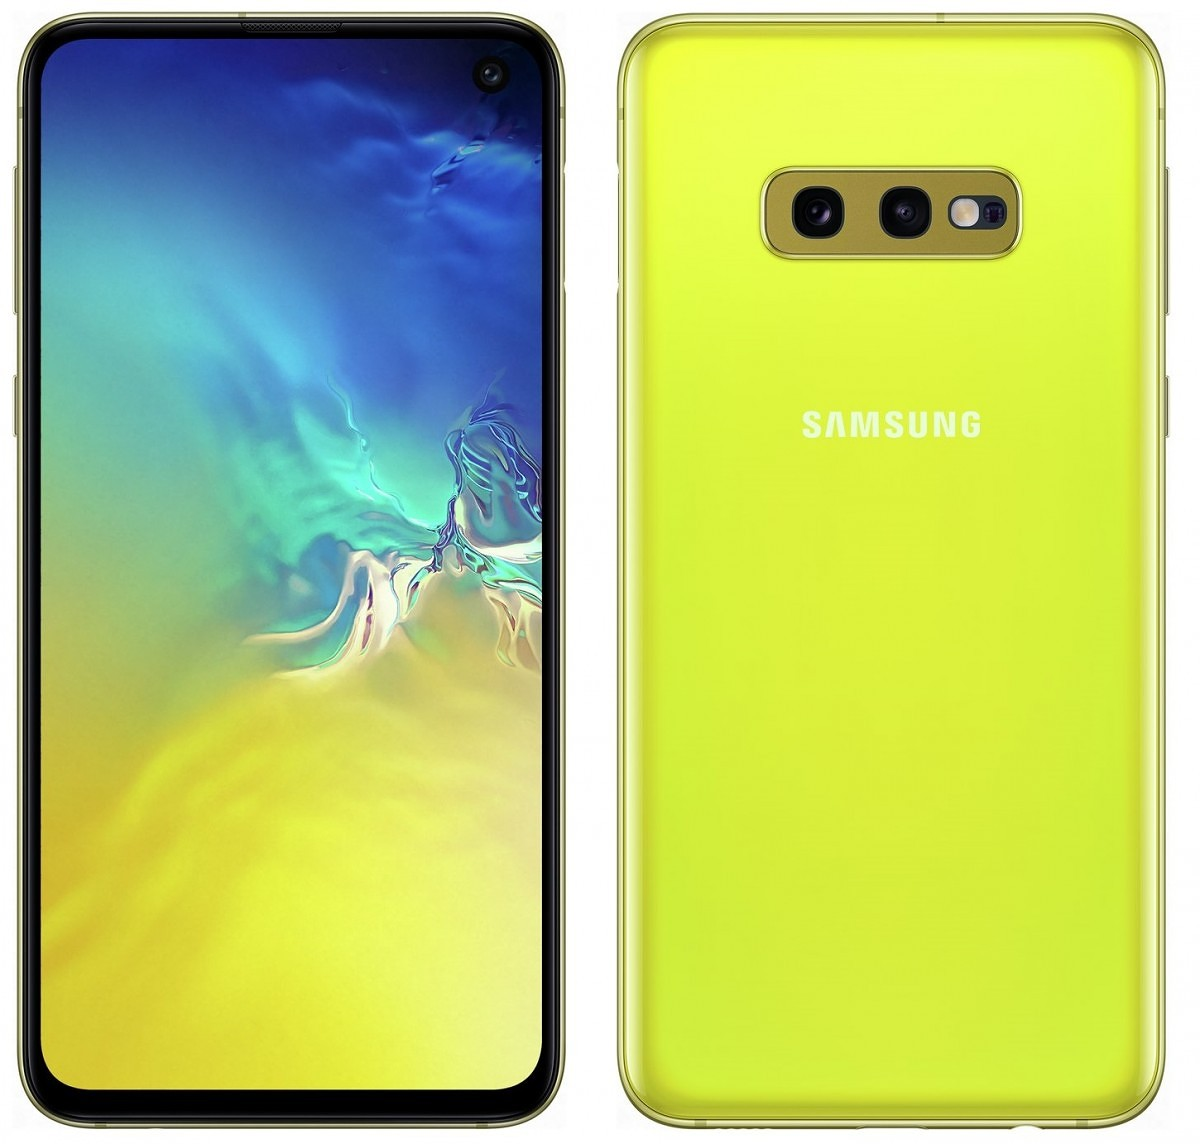 Galaxy S10E Model Numbers & Differences